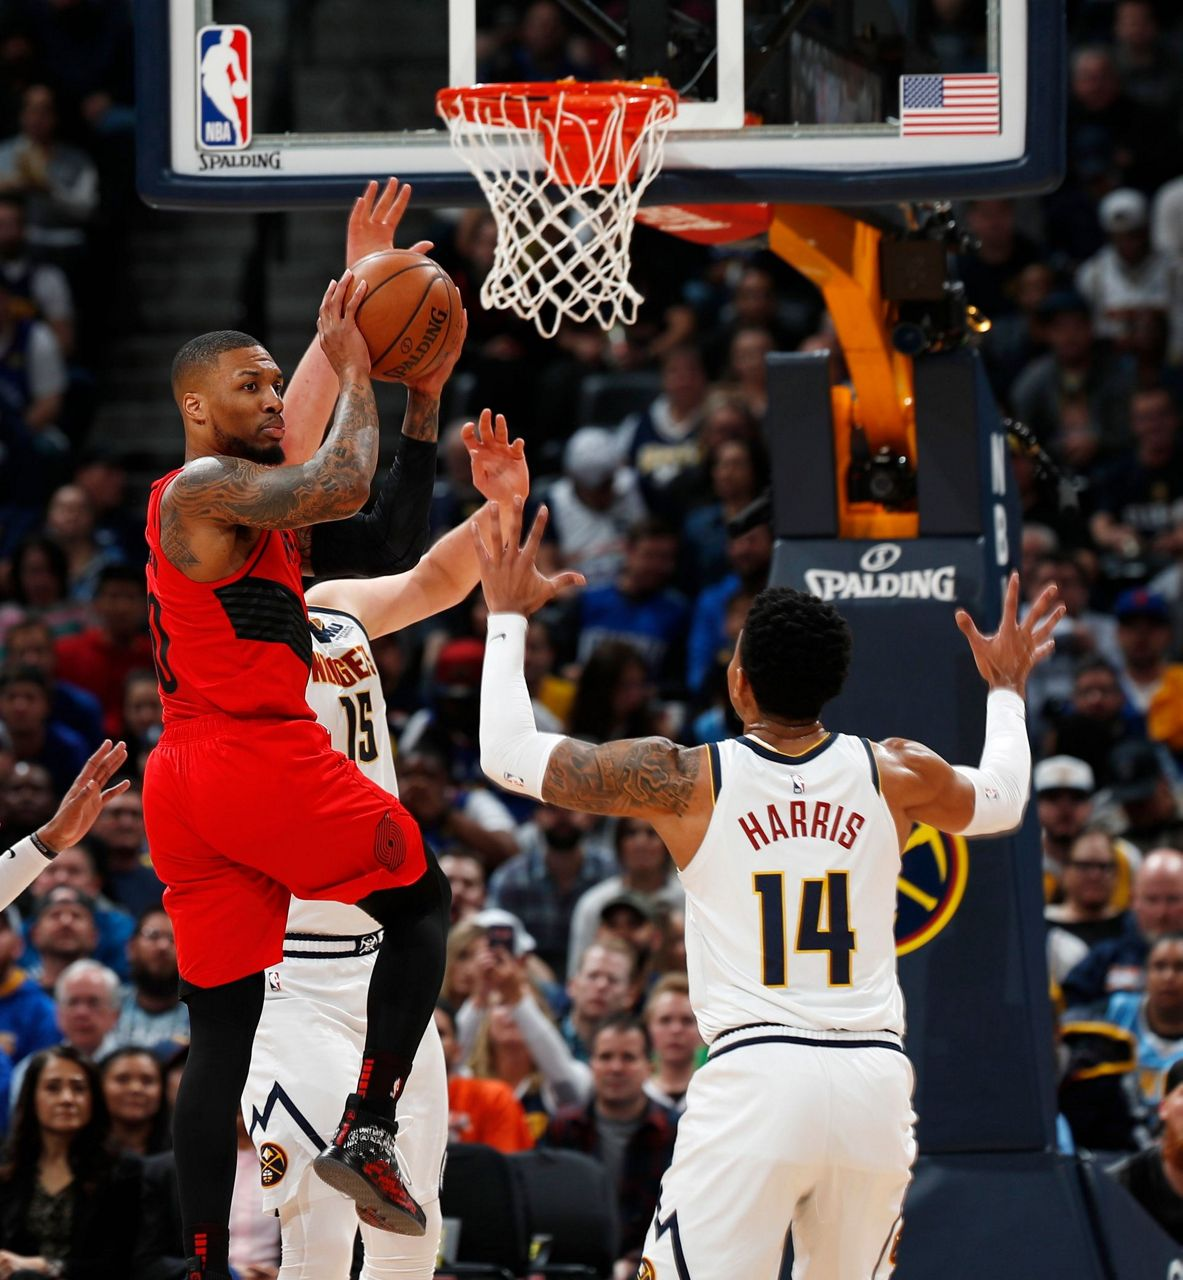 Portland Blazers Game: McCollum Leads Blazers Past Cold Nuggets, 97-90